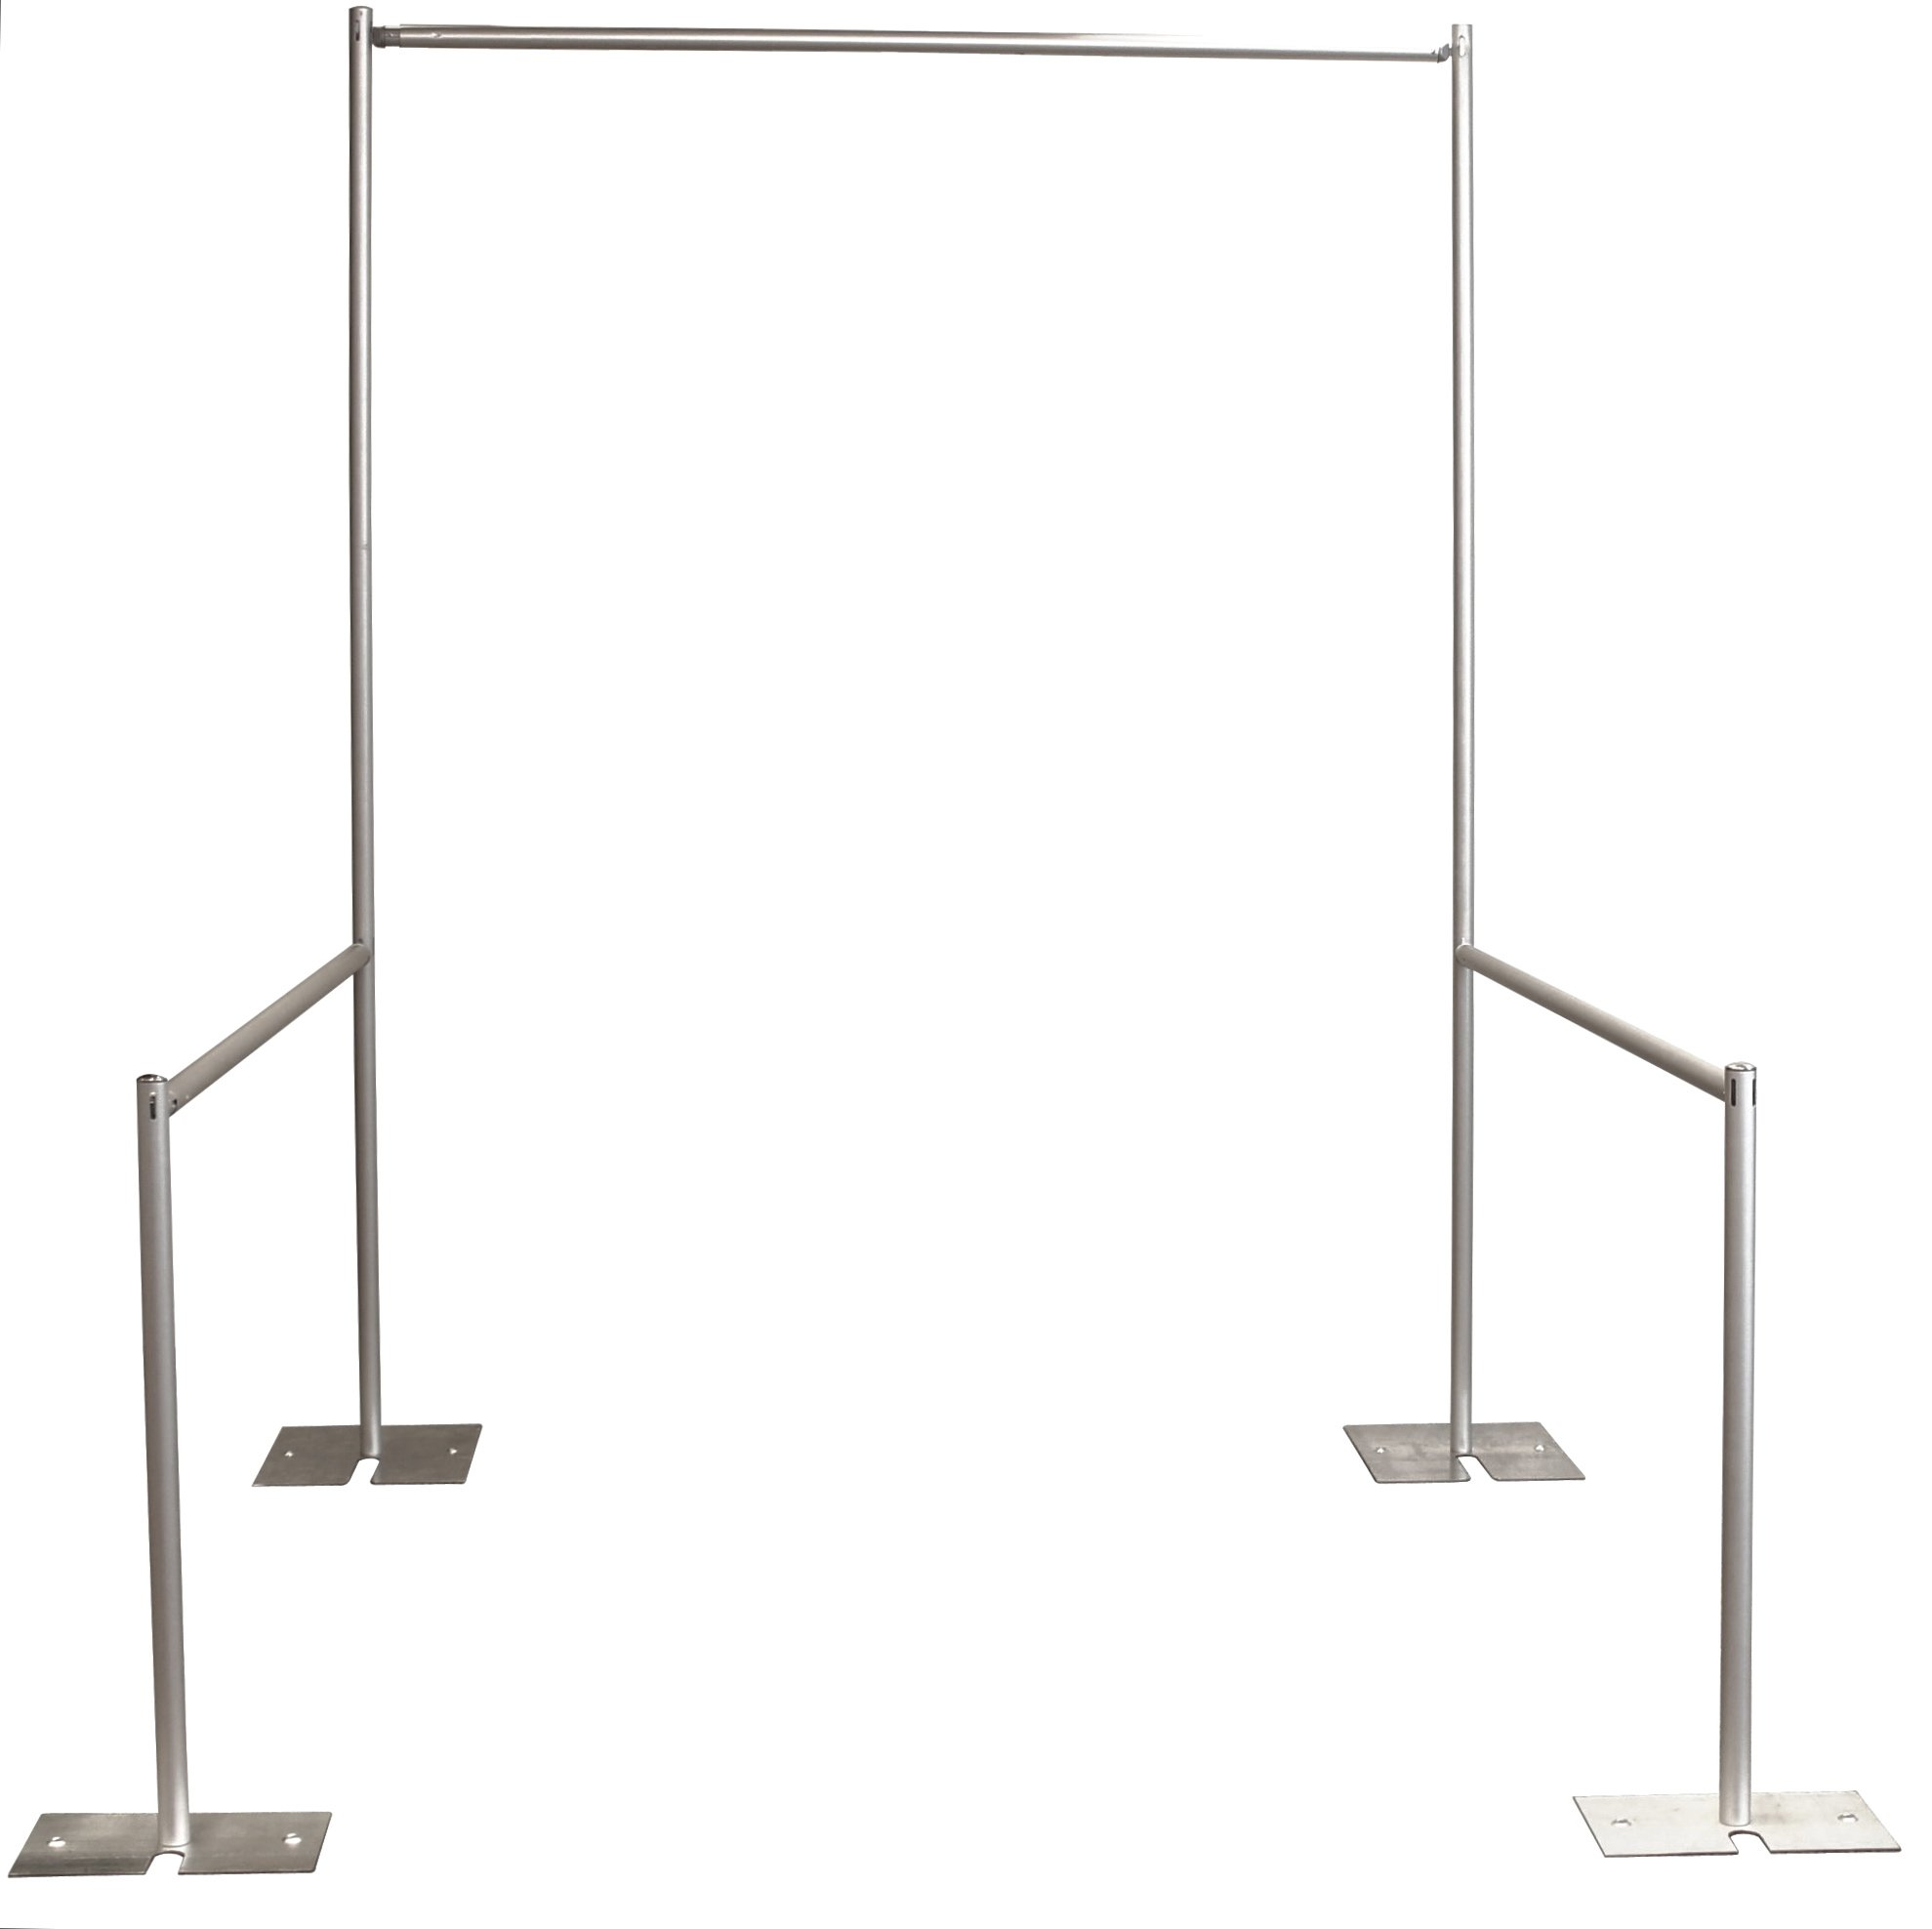 Single Premier Trade Show Display Booth Package 10 ft. x 10 ft. - Royal Blue by P.D.O.